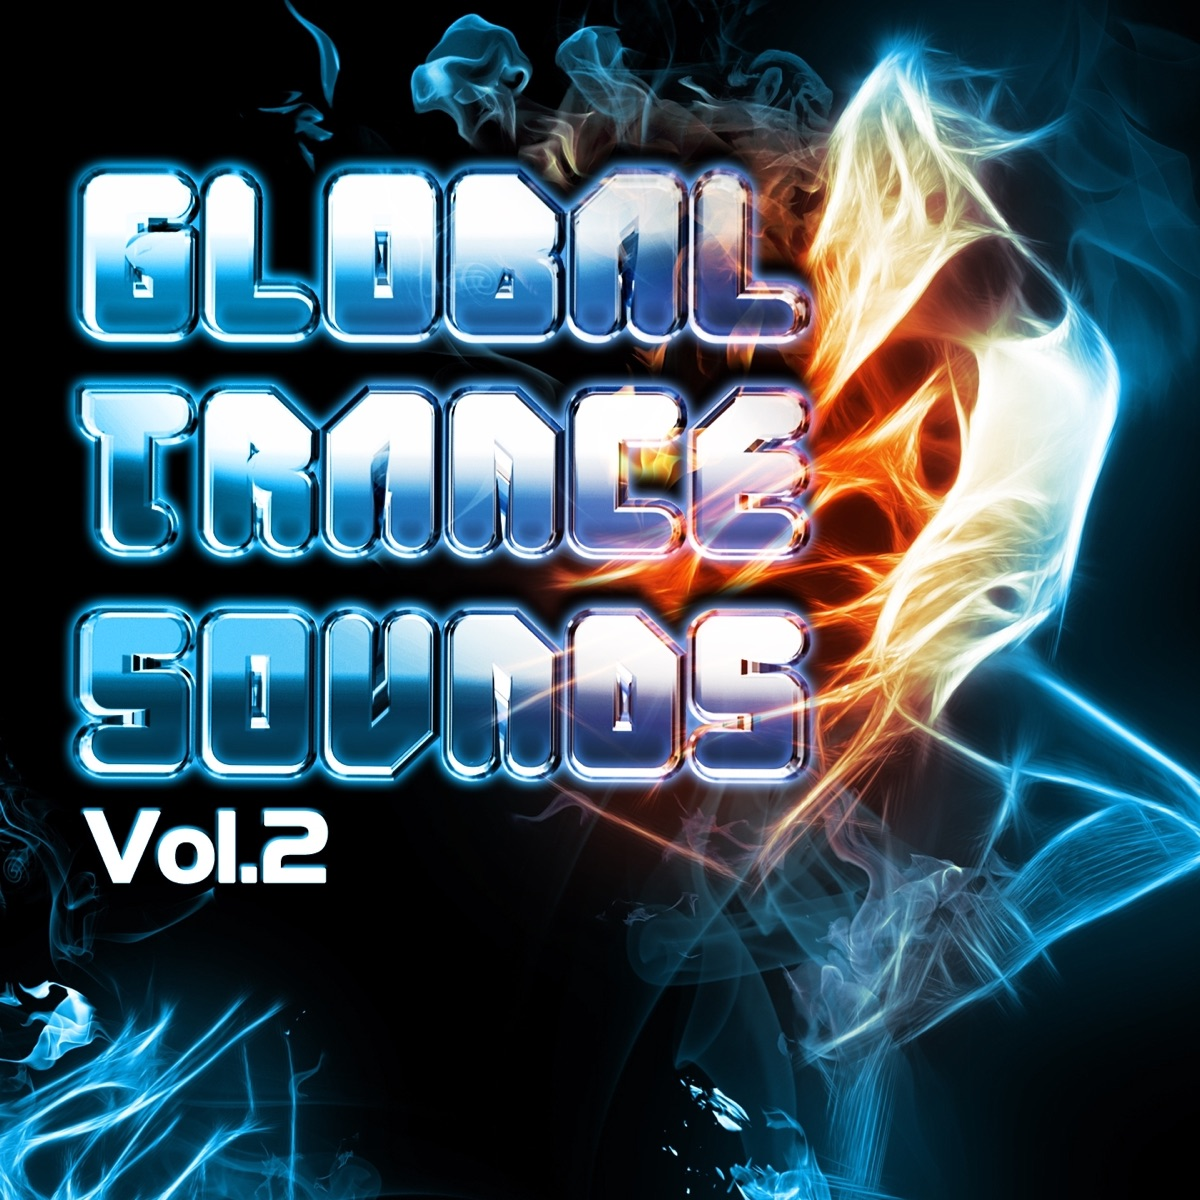 Global Trance Sounds Vol 2 Future Club Guide of Electronic Anthems Various Artists CD cover